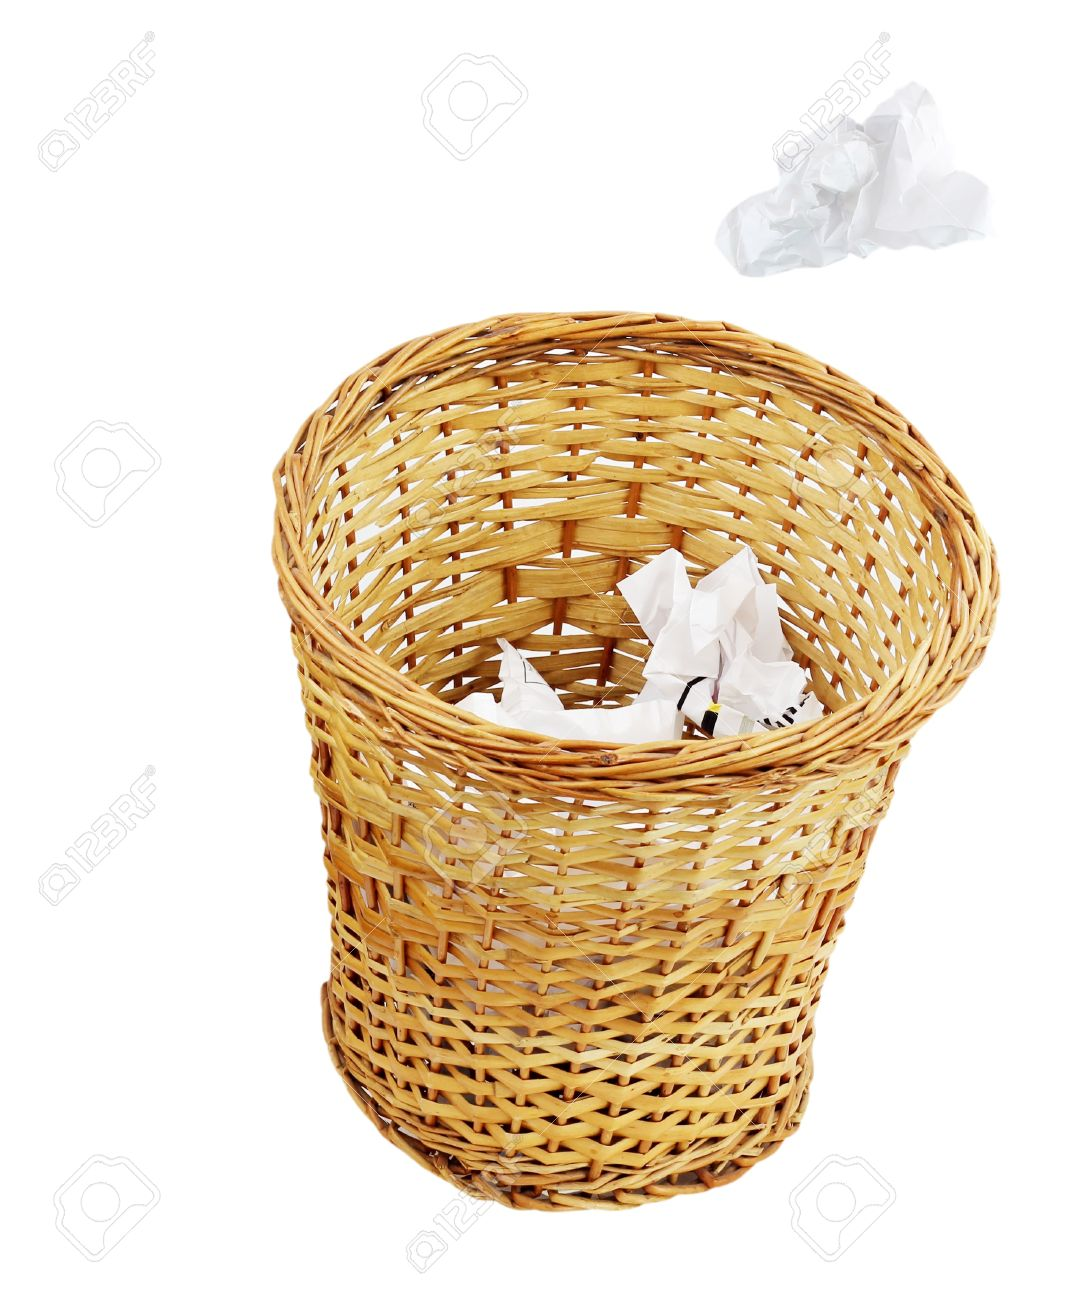 A Crumpled Paper Being Thrown Into A Wicker Trash Can Isolated